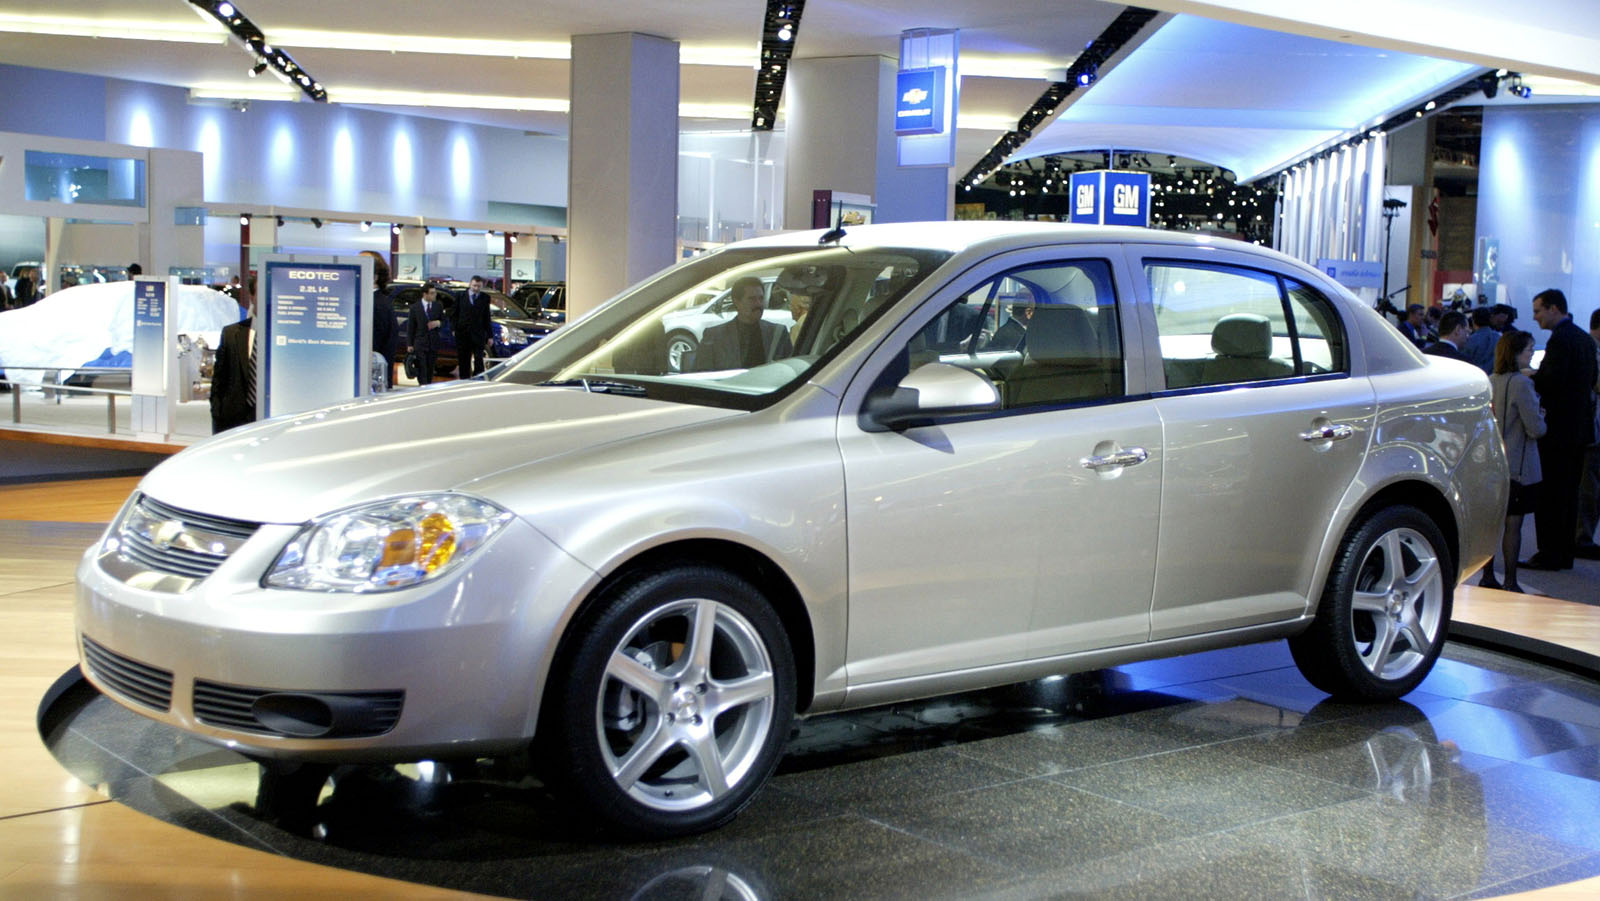 The 2005 Chevrolet Cobalt is displayed on the floor of the North American International Auto Show Ja..